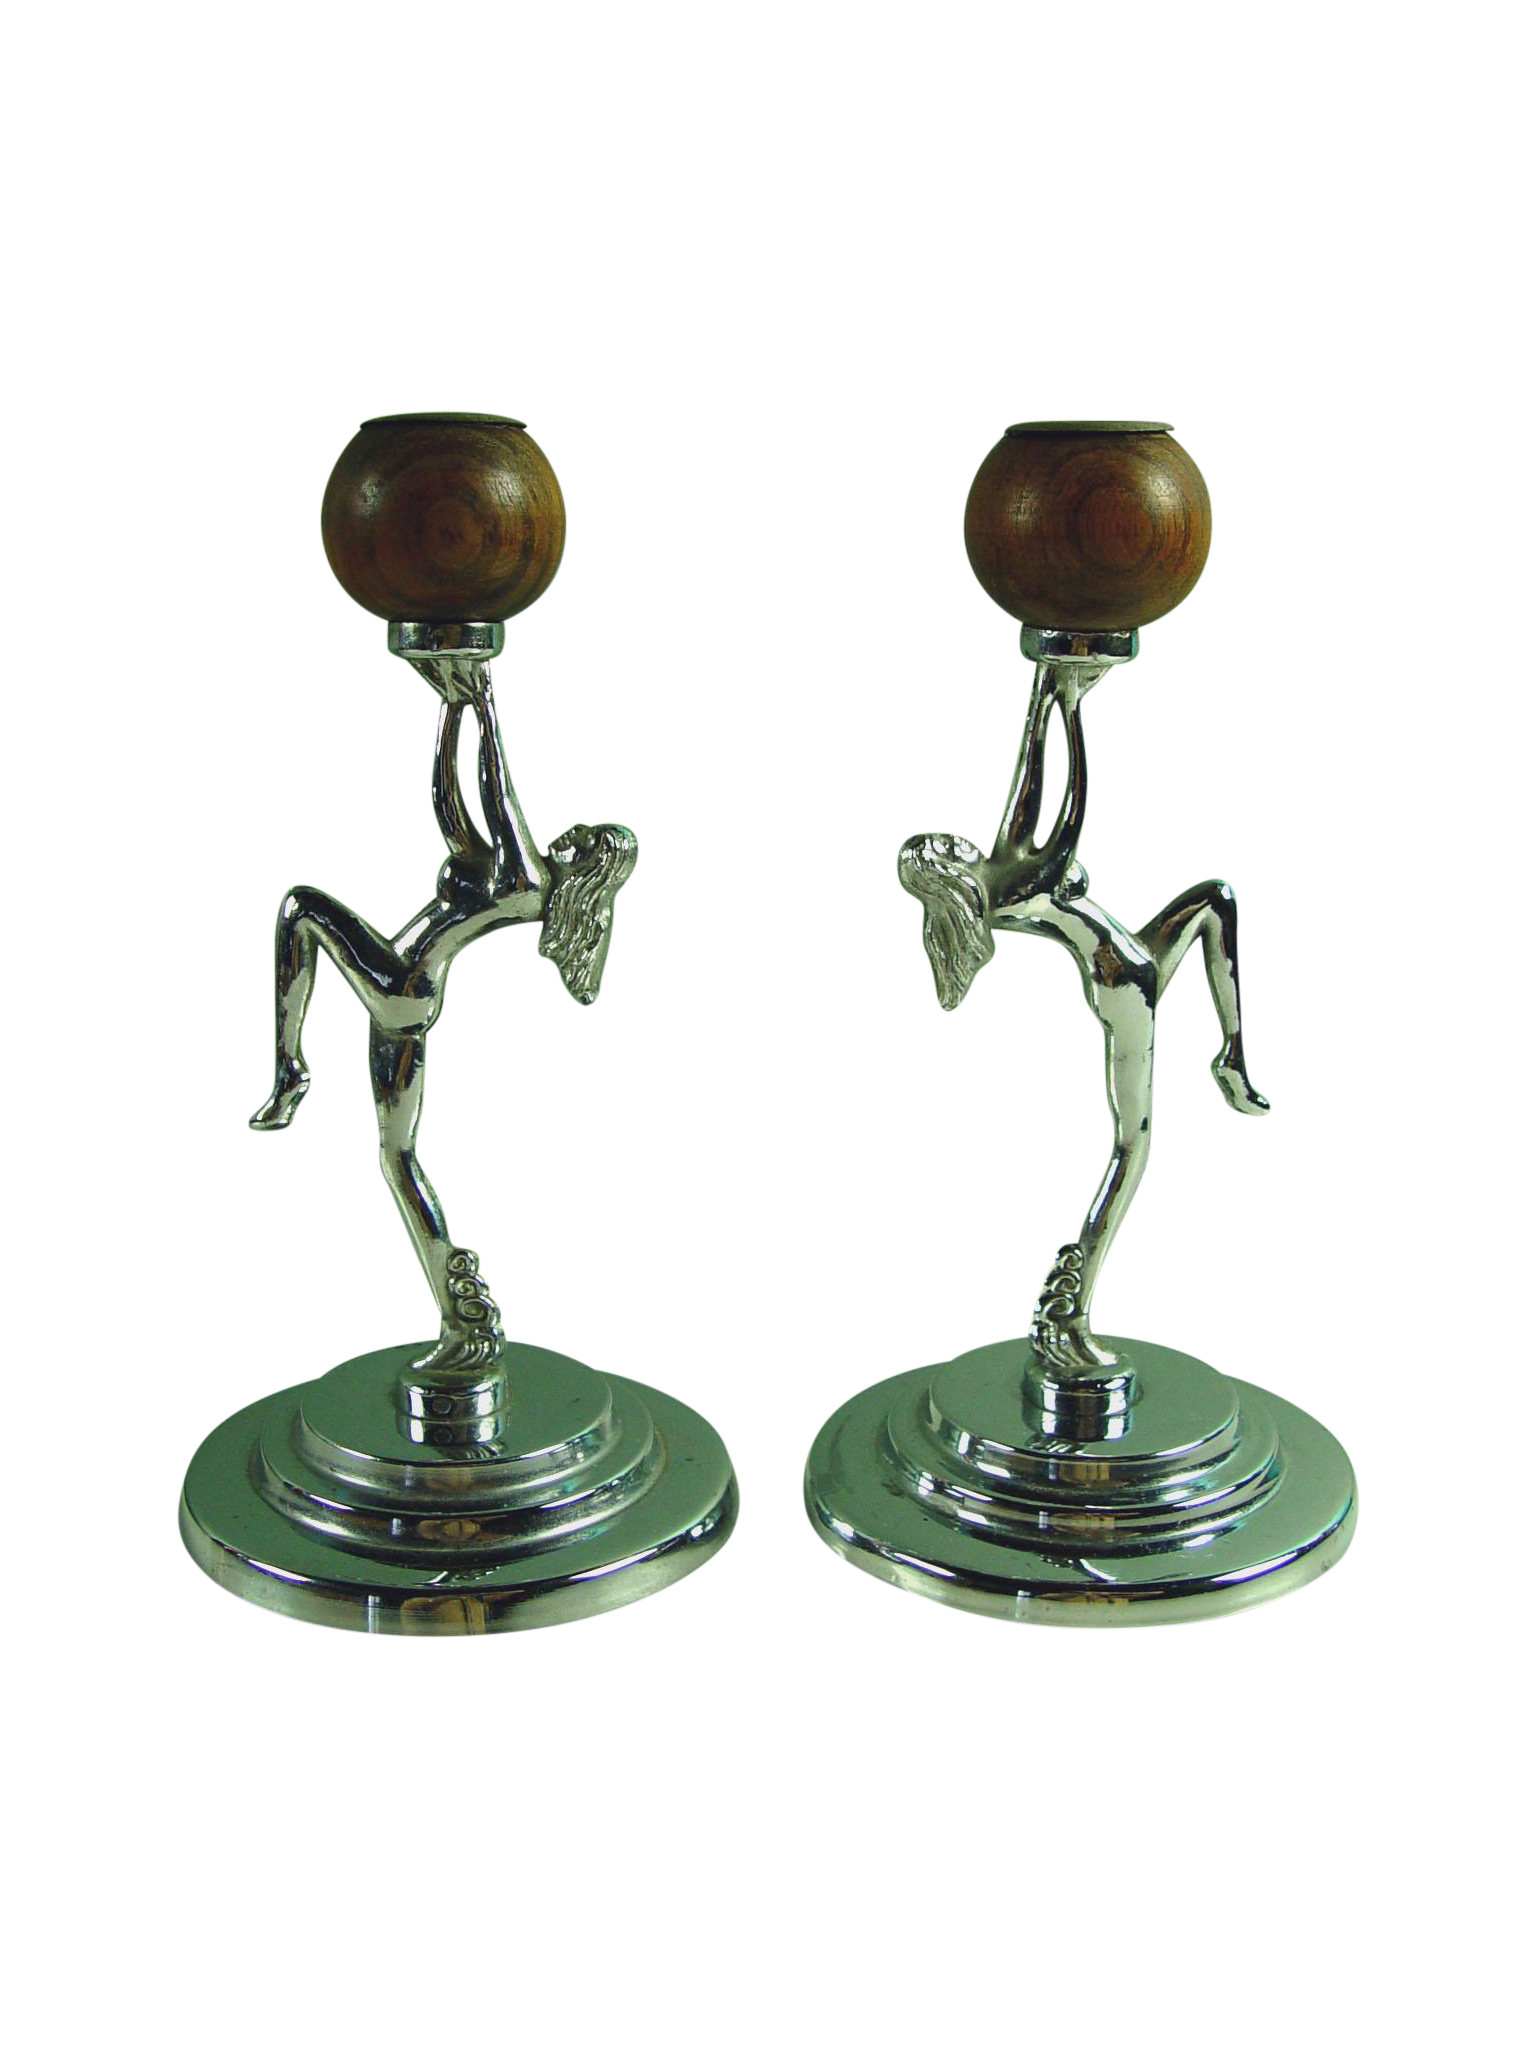 Antique Deco Chrome Nude Candleholders A Pair Chairish